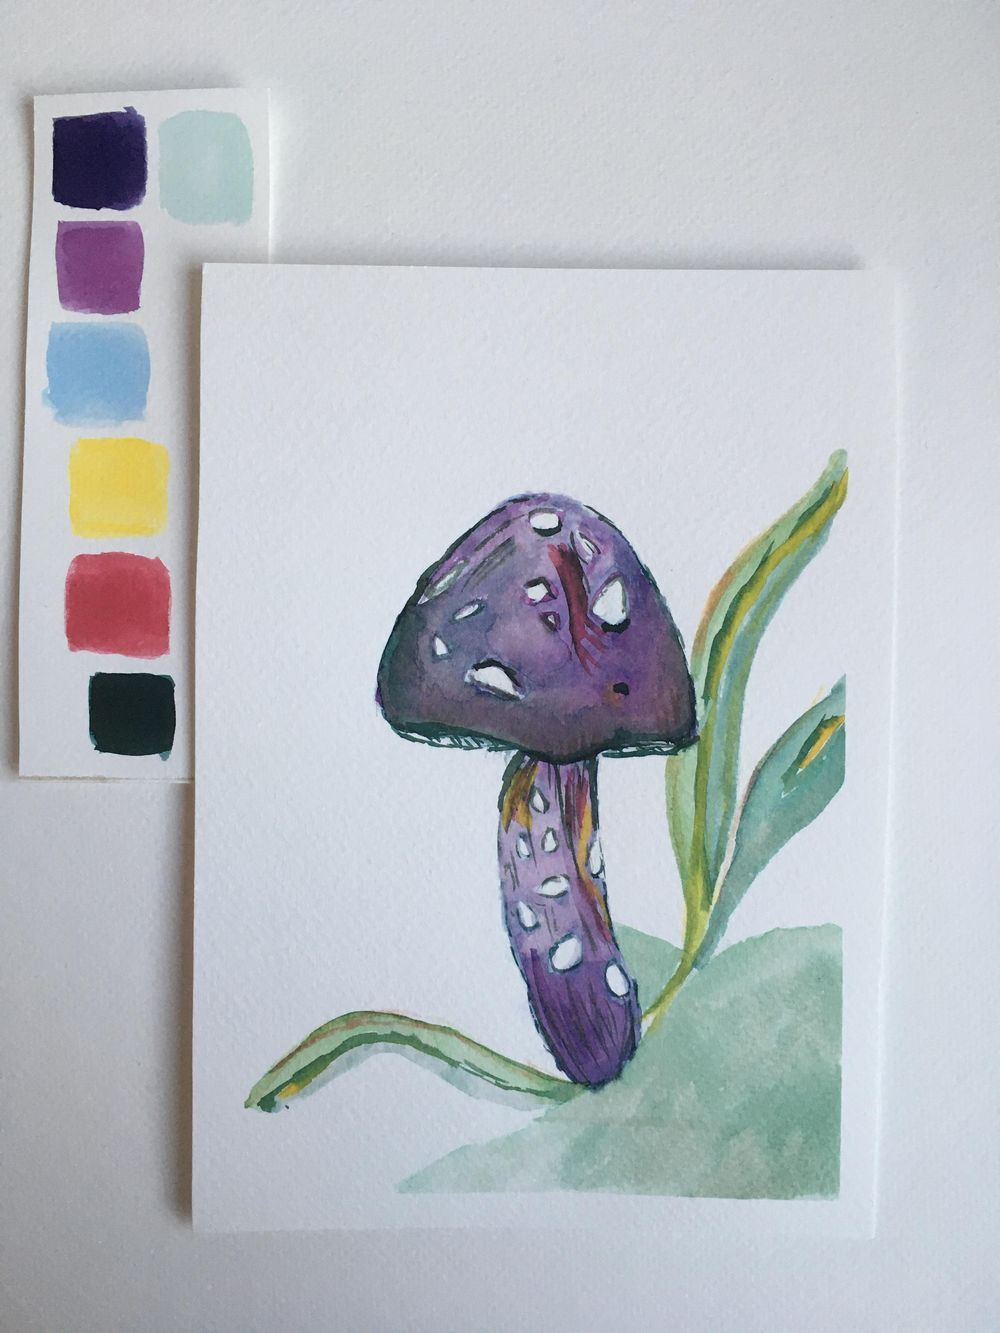 Mushroom and fern - image 1 - student project